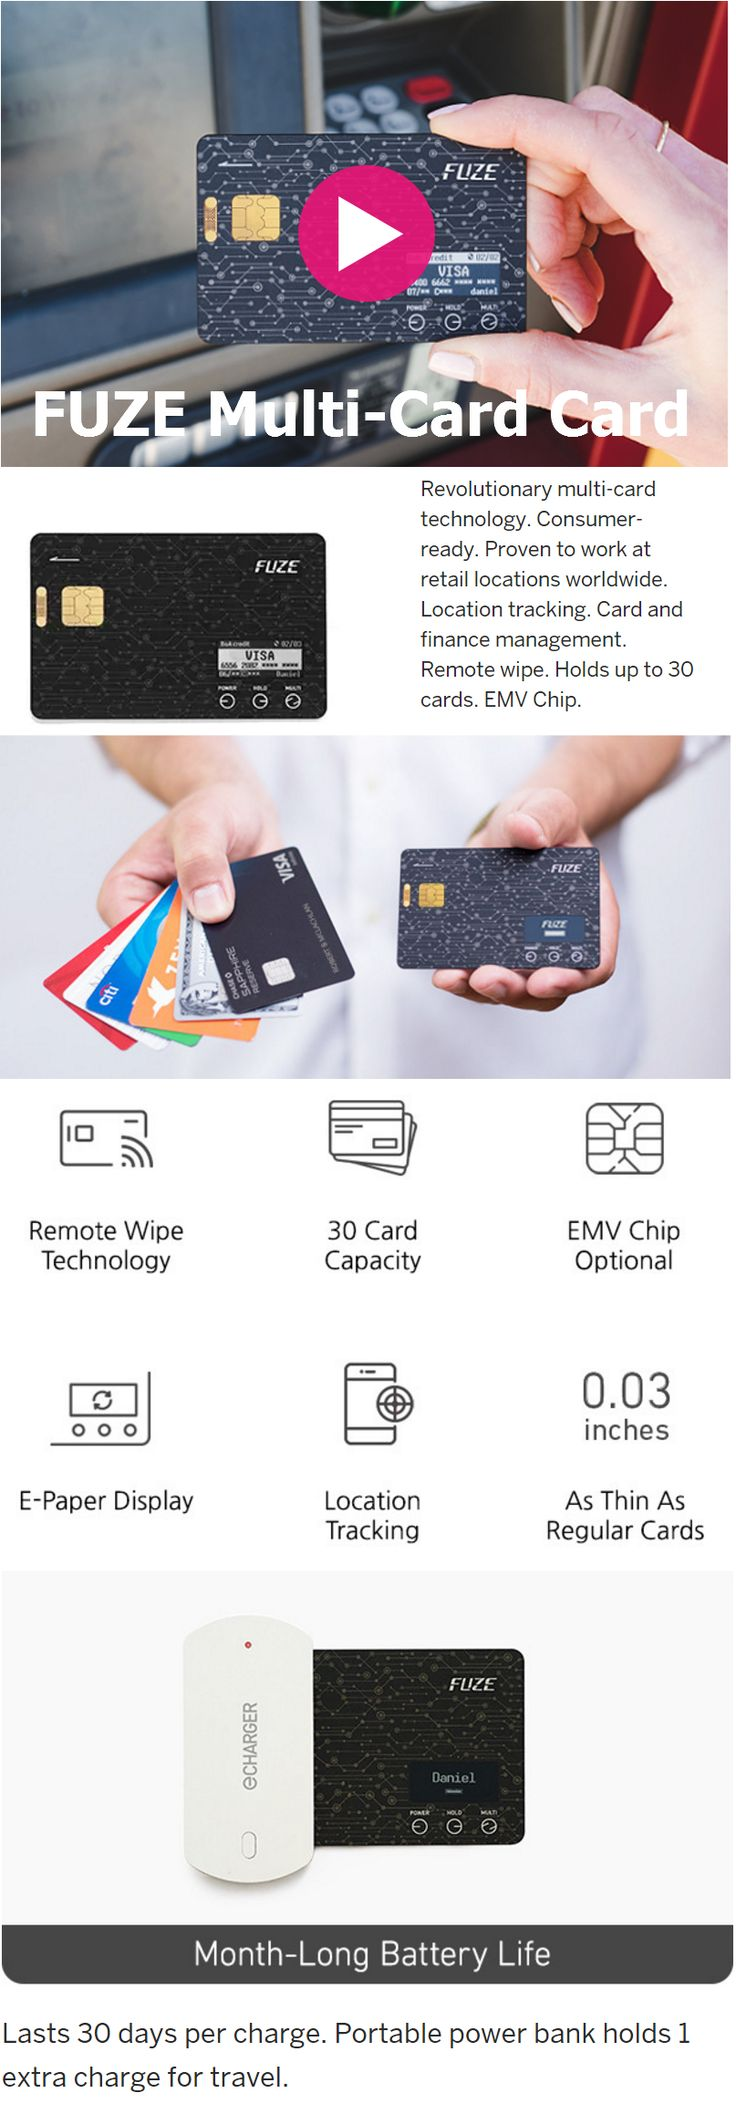 Fuze Card: Your Whole Wallet in One Card. Secure, Slim, Convenient. Electronic Card with EMV Chip. Holds Up to 30 Credit, Debit, or Gift Cards.